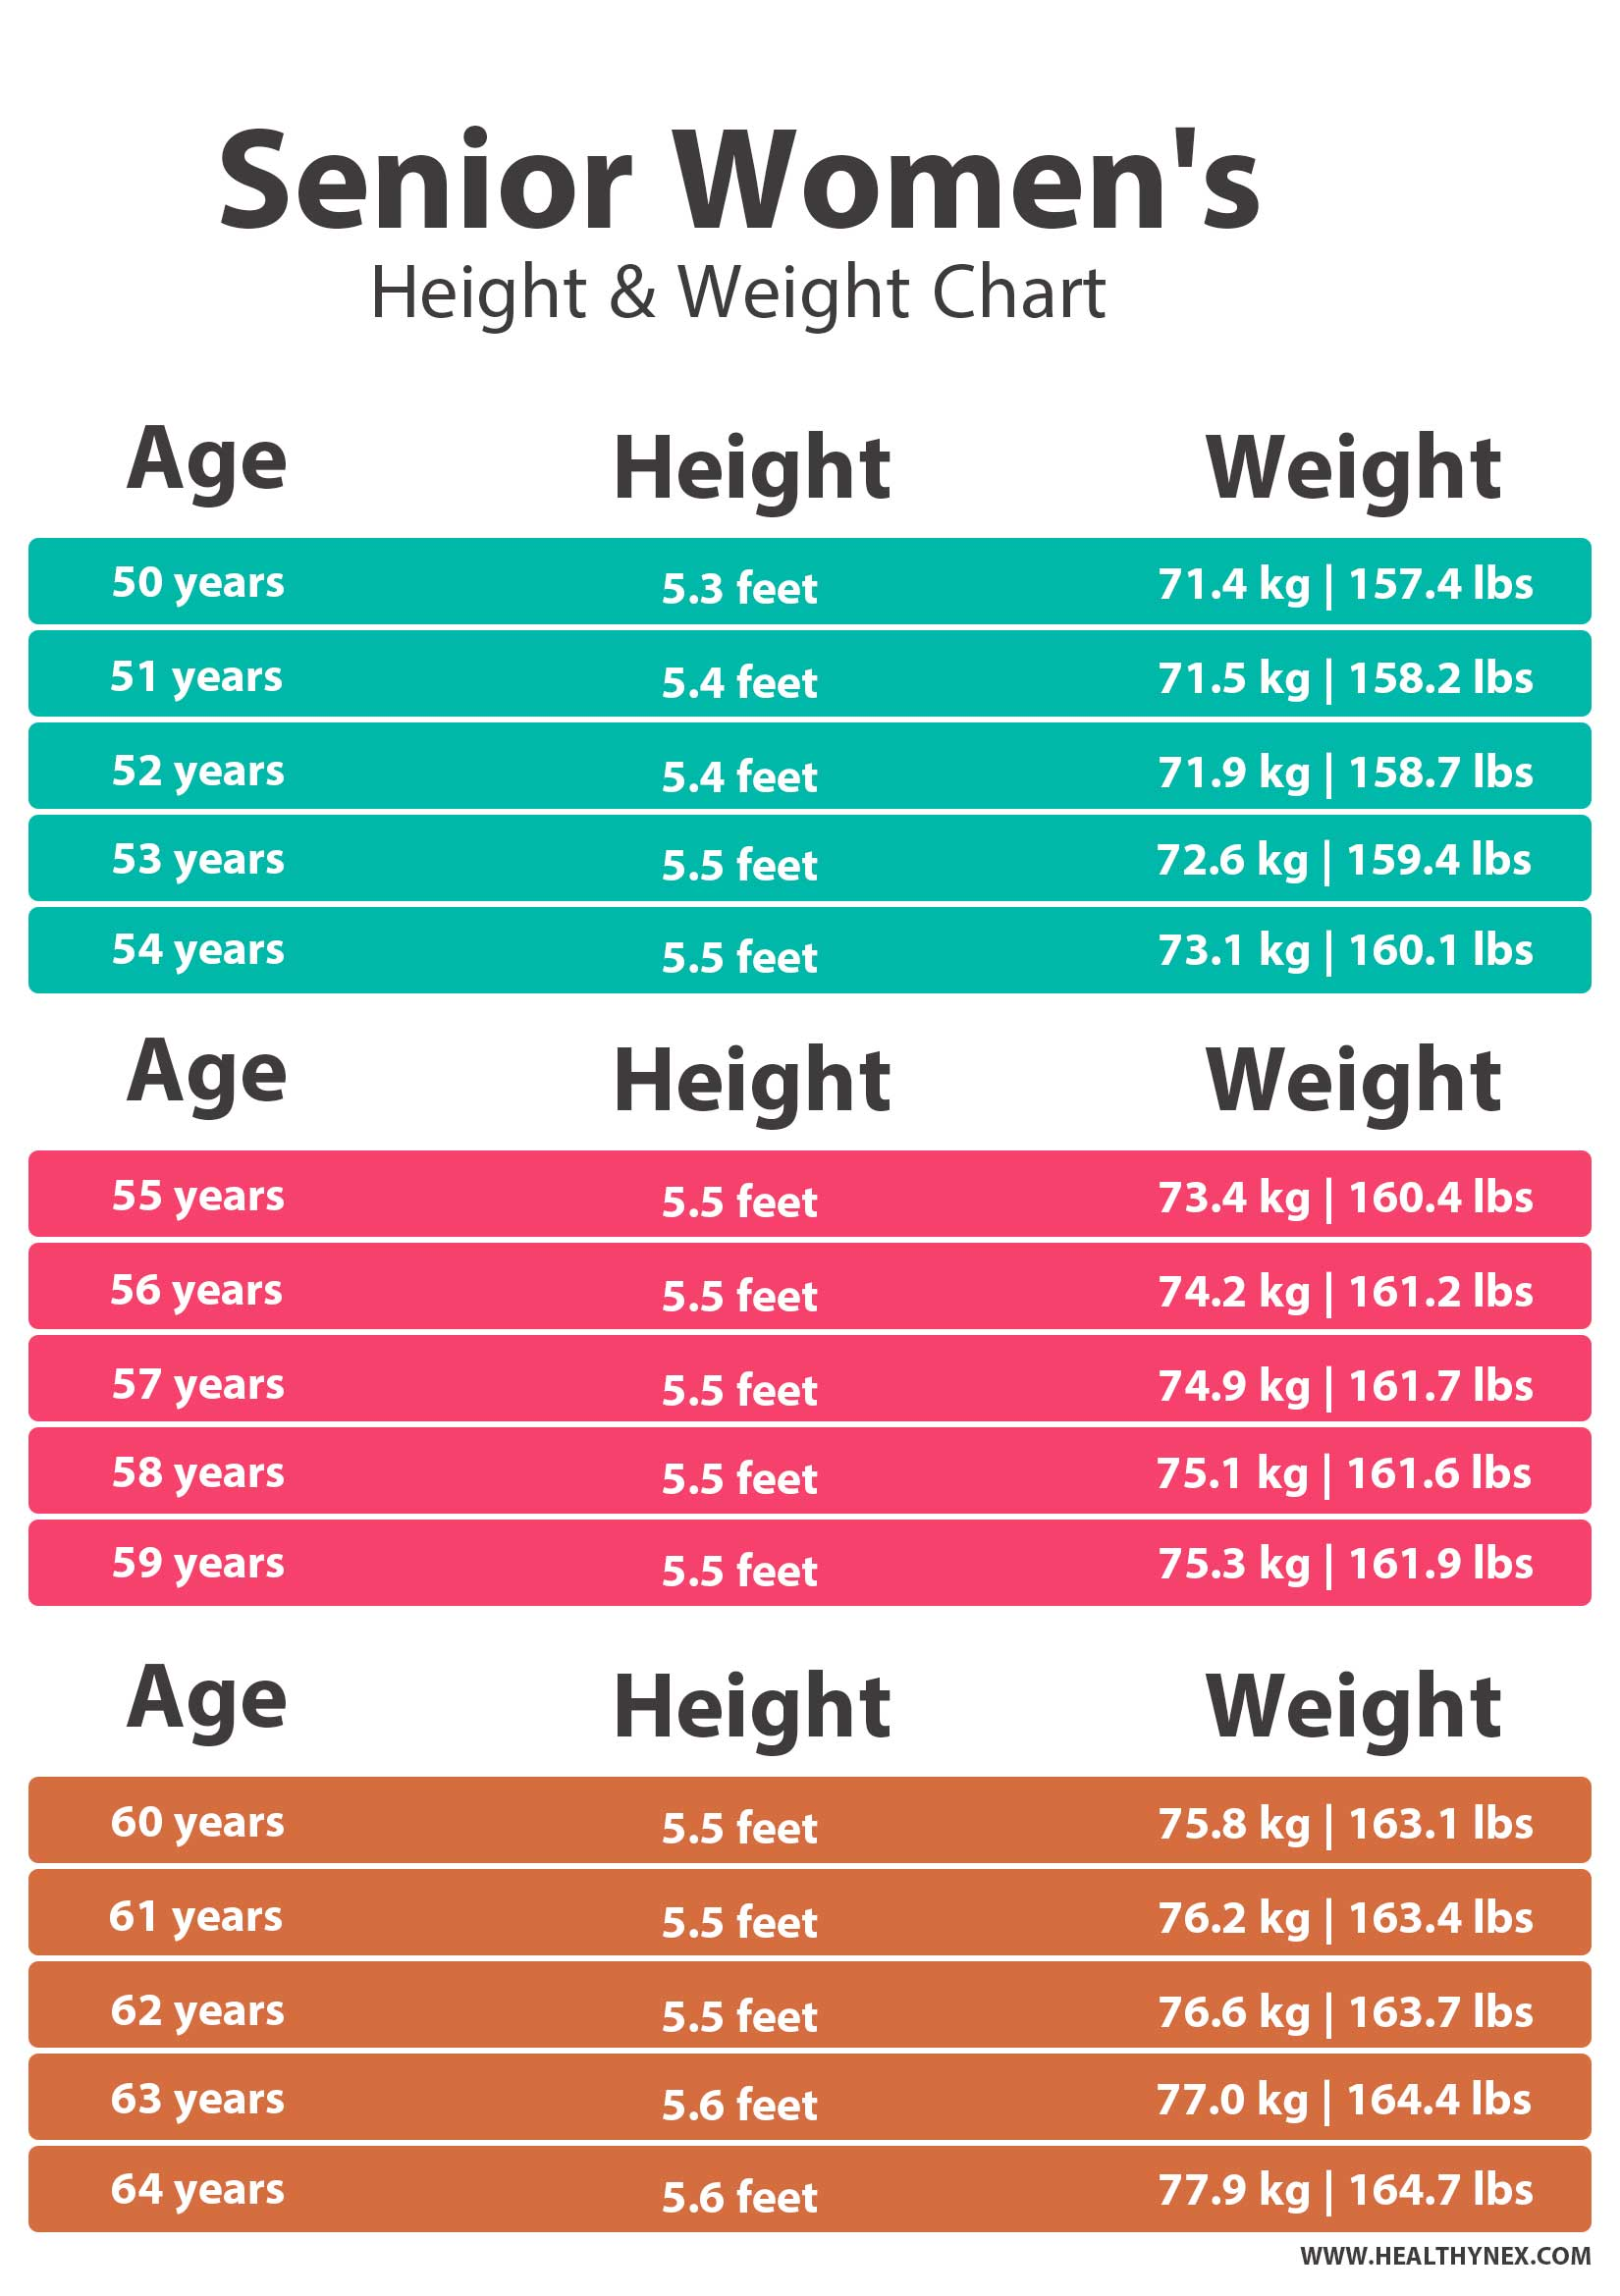 Average Height & Weight Chart for Seniors Females by age in kg